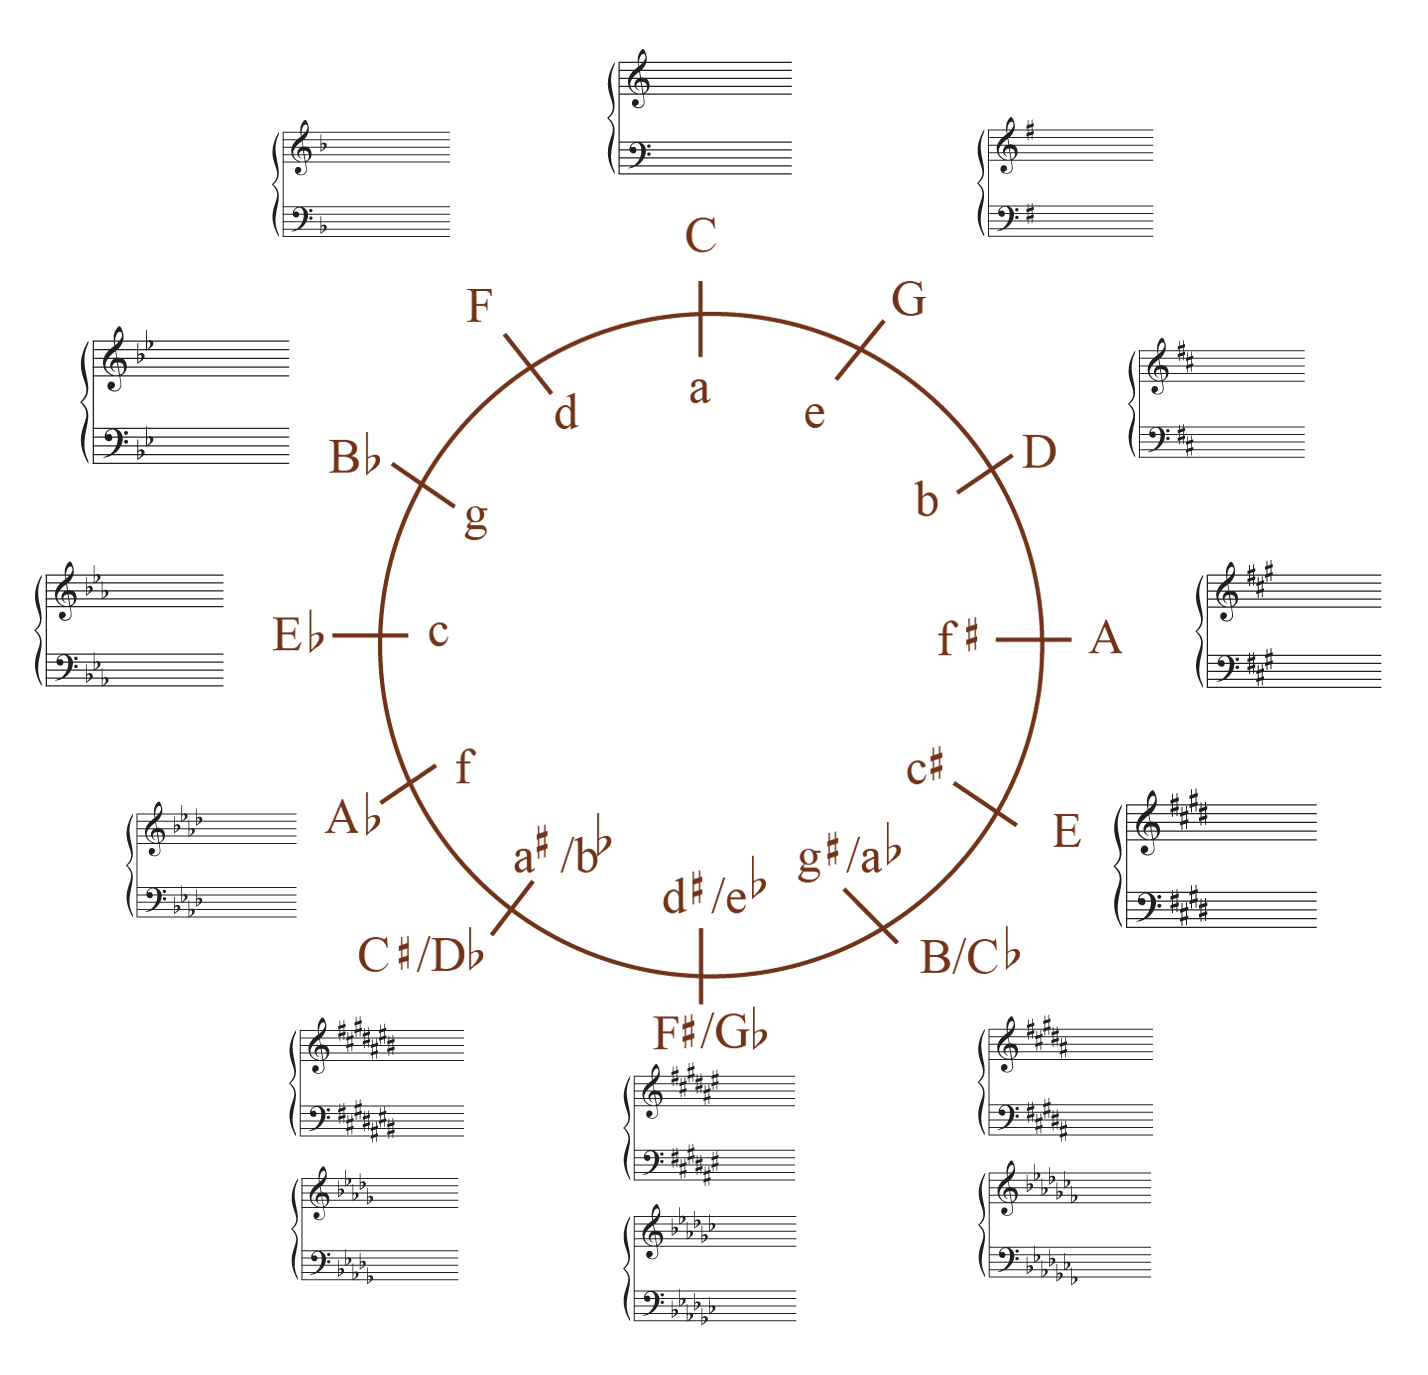 Relative Major And Minor Scales Chart